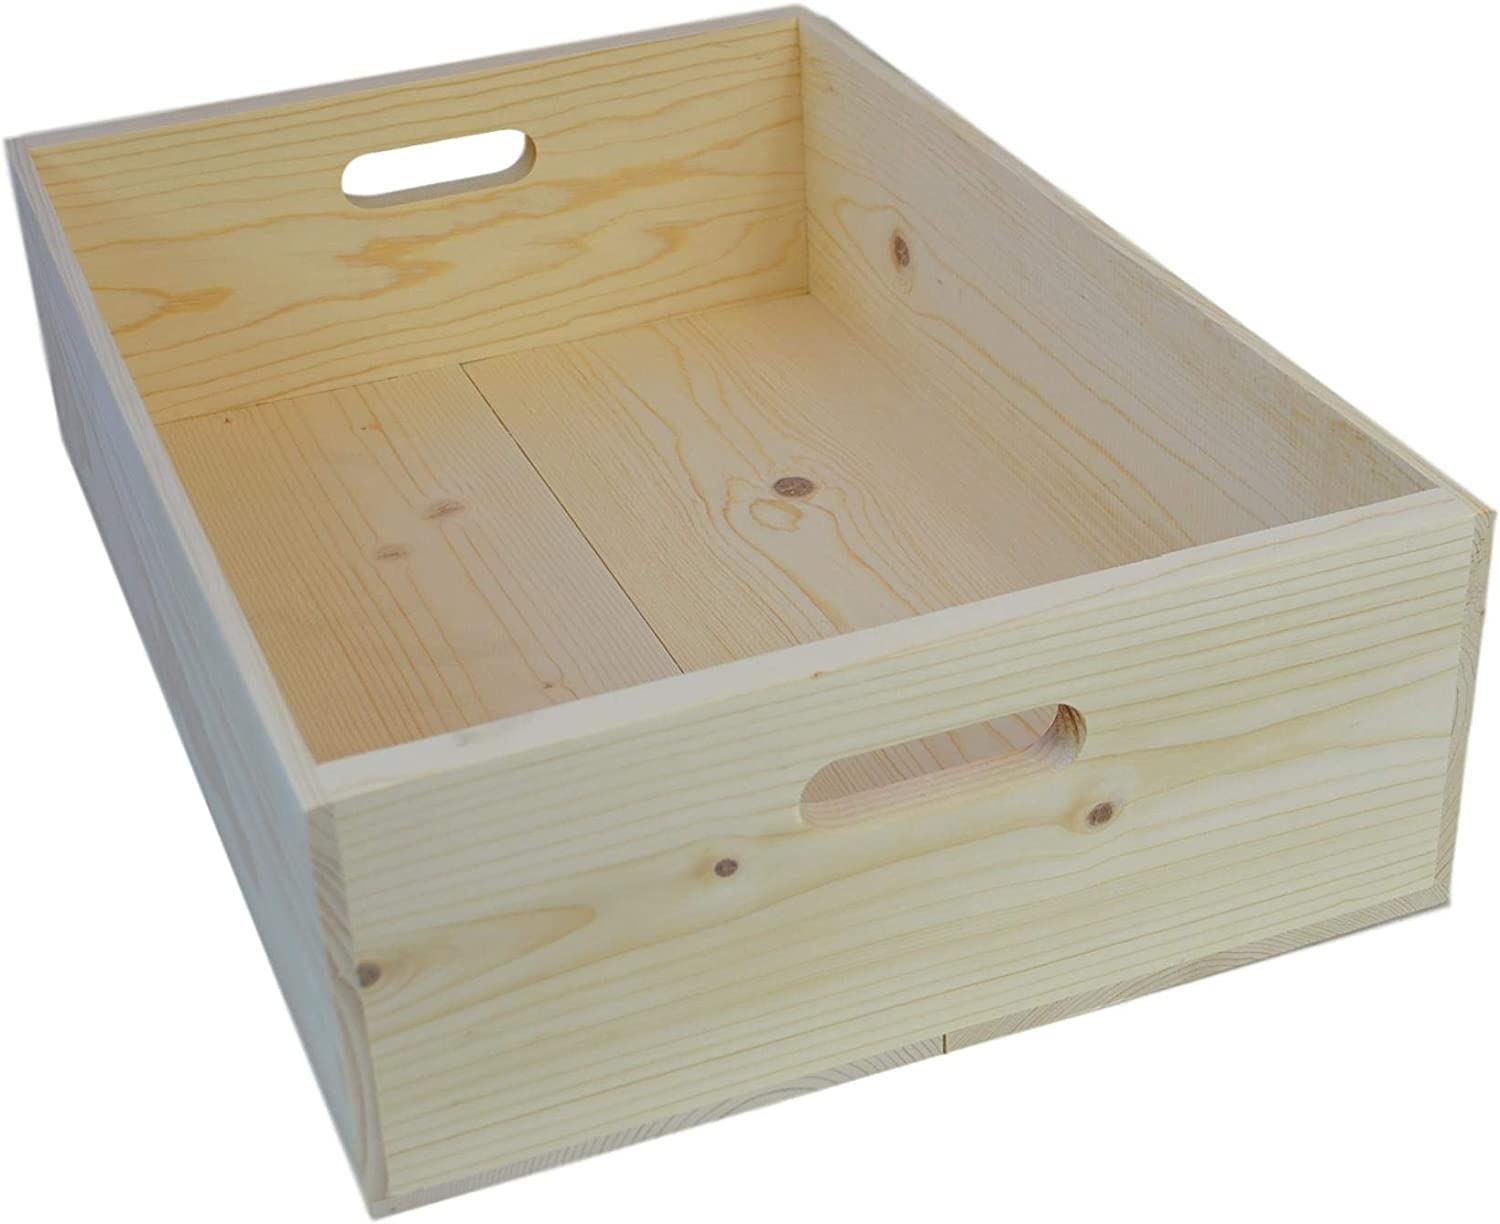 Wooden Wine Box 19 5x13 5x5 5 Inside Dimensions Brewing And Venting Racks And Storage Bar Tools Drinkware